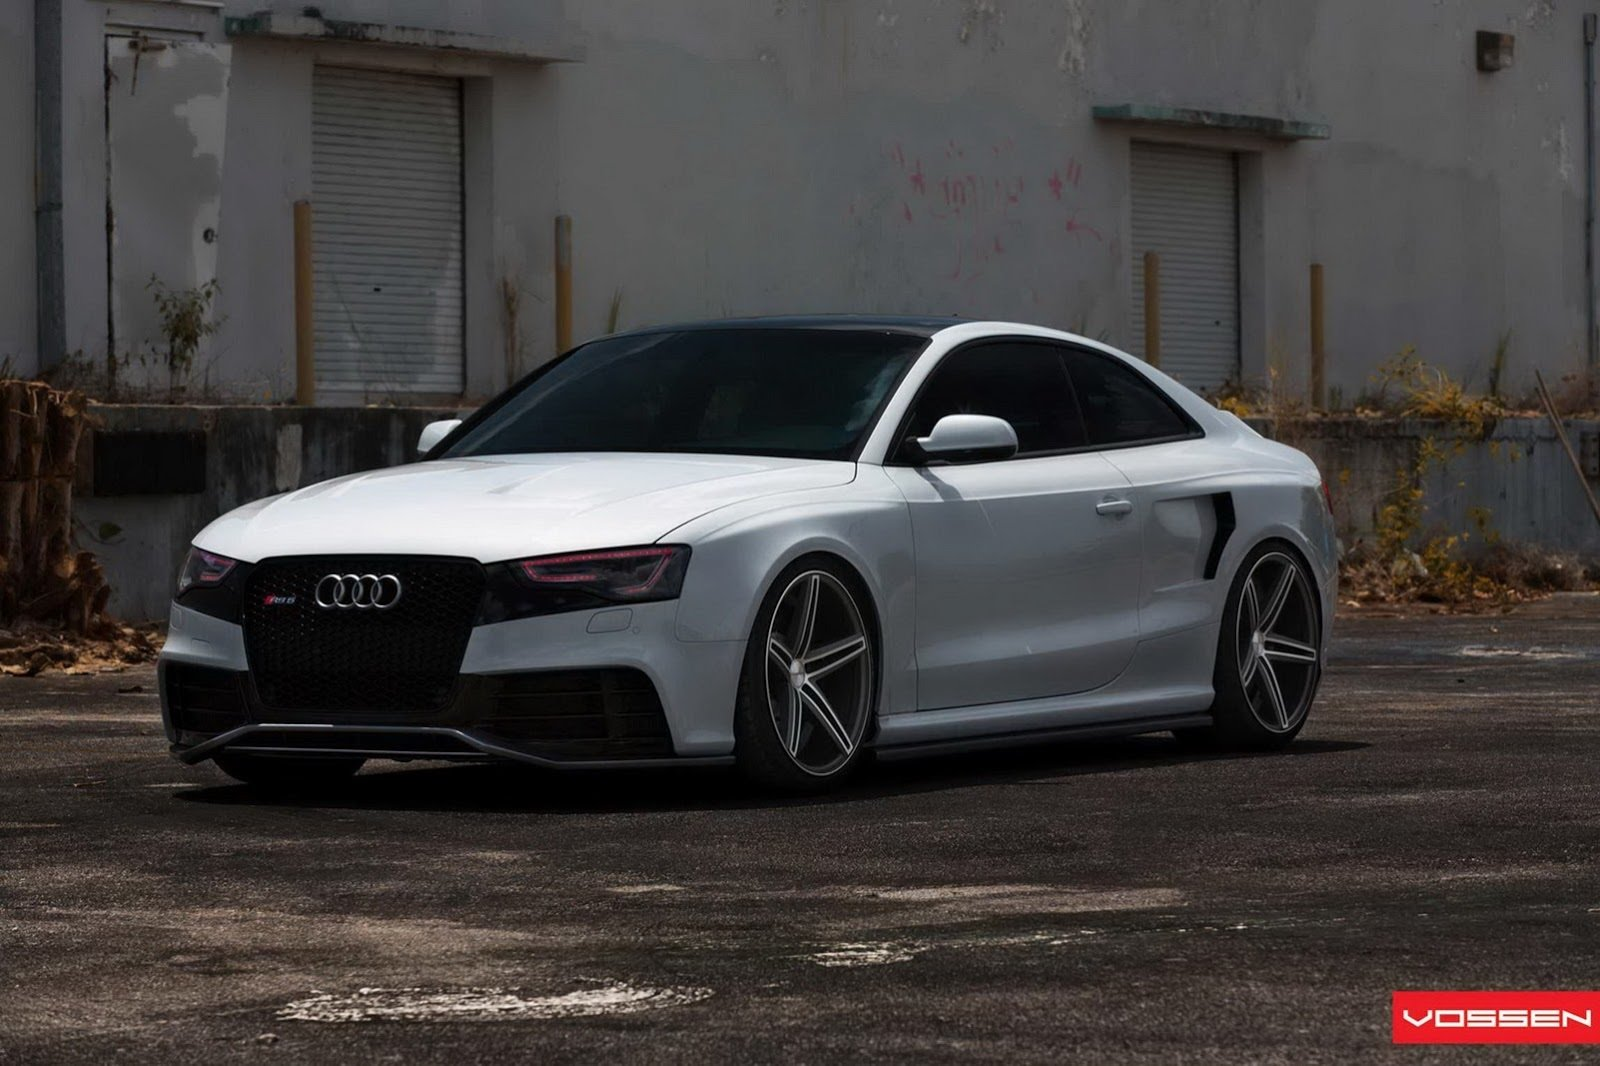 Audi Rs 3 >> 2013 Audi RS5 By OSS Designs | Top Speed